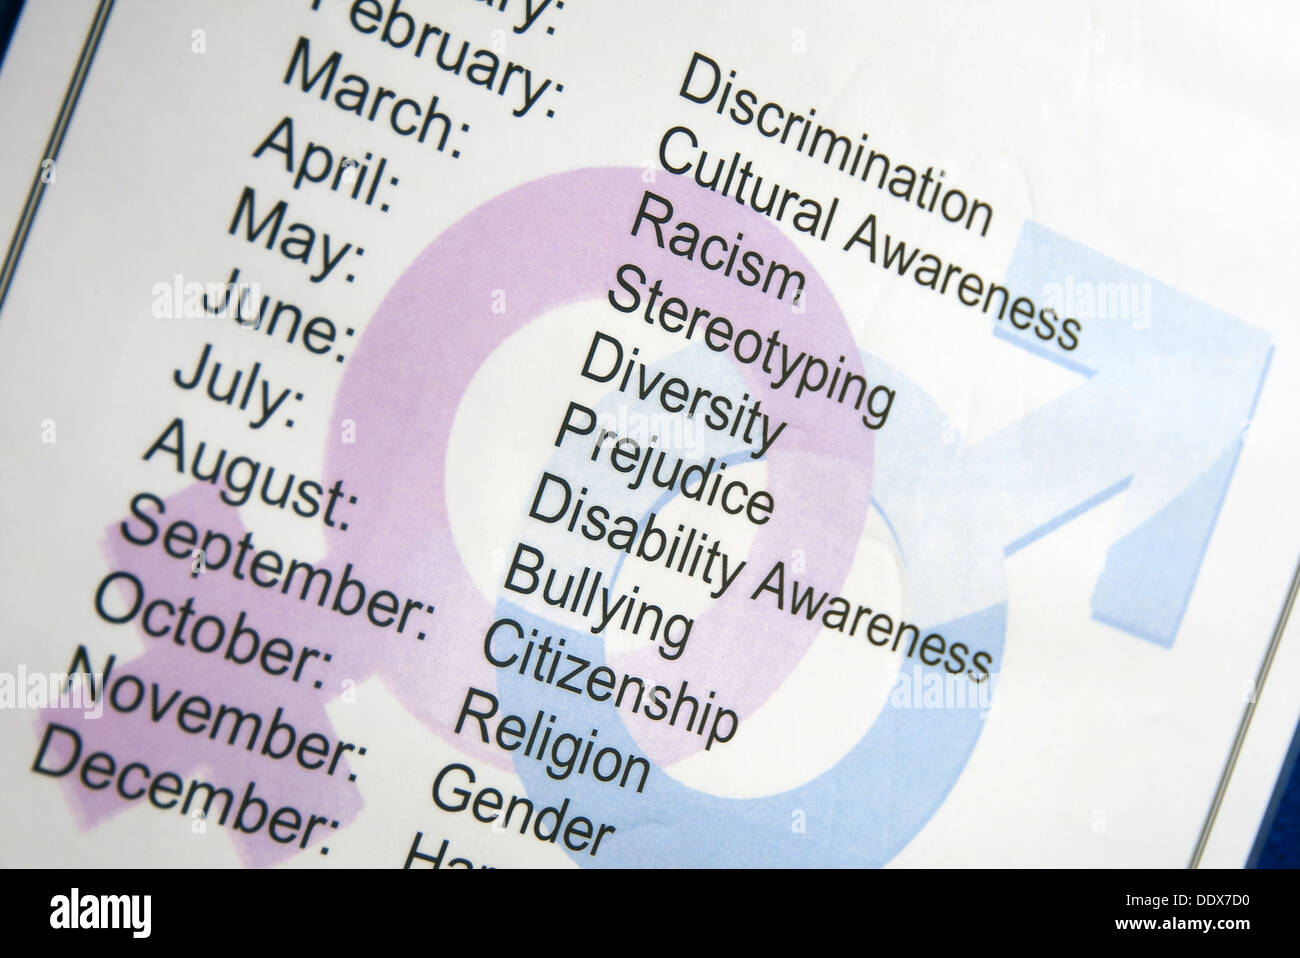 sign with calendar months and social topics from diversity to religion - Stock Image